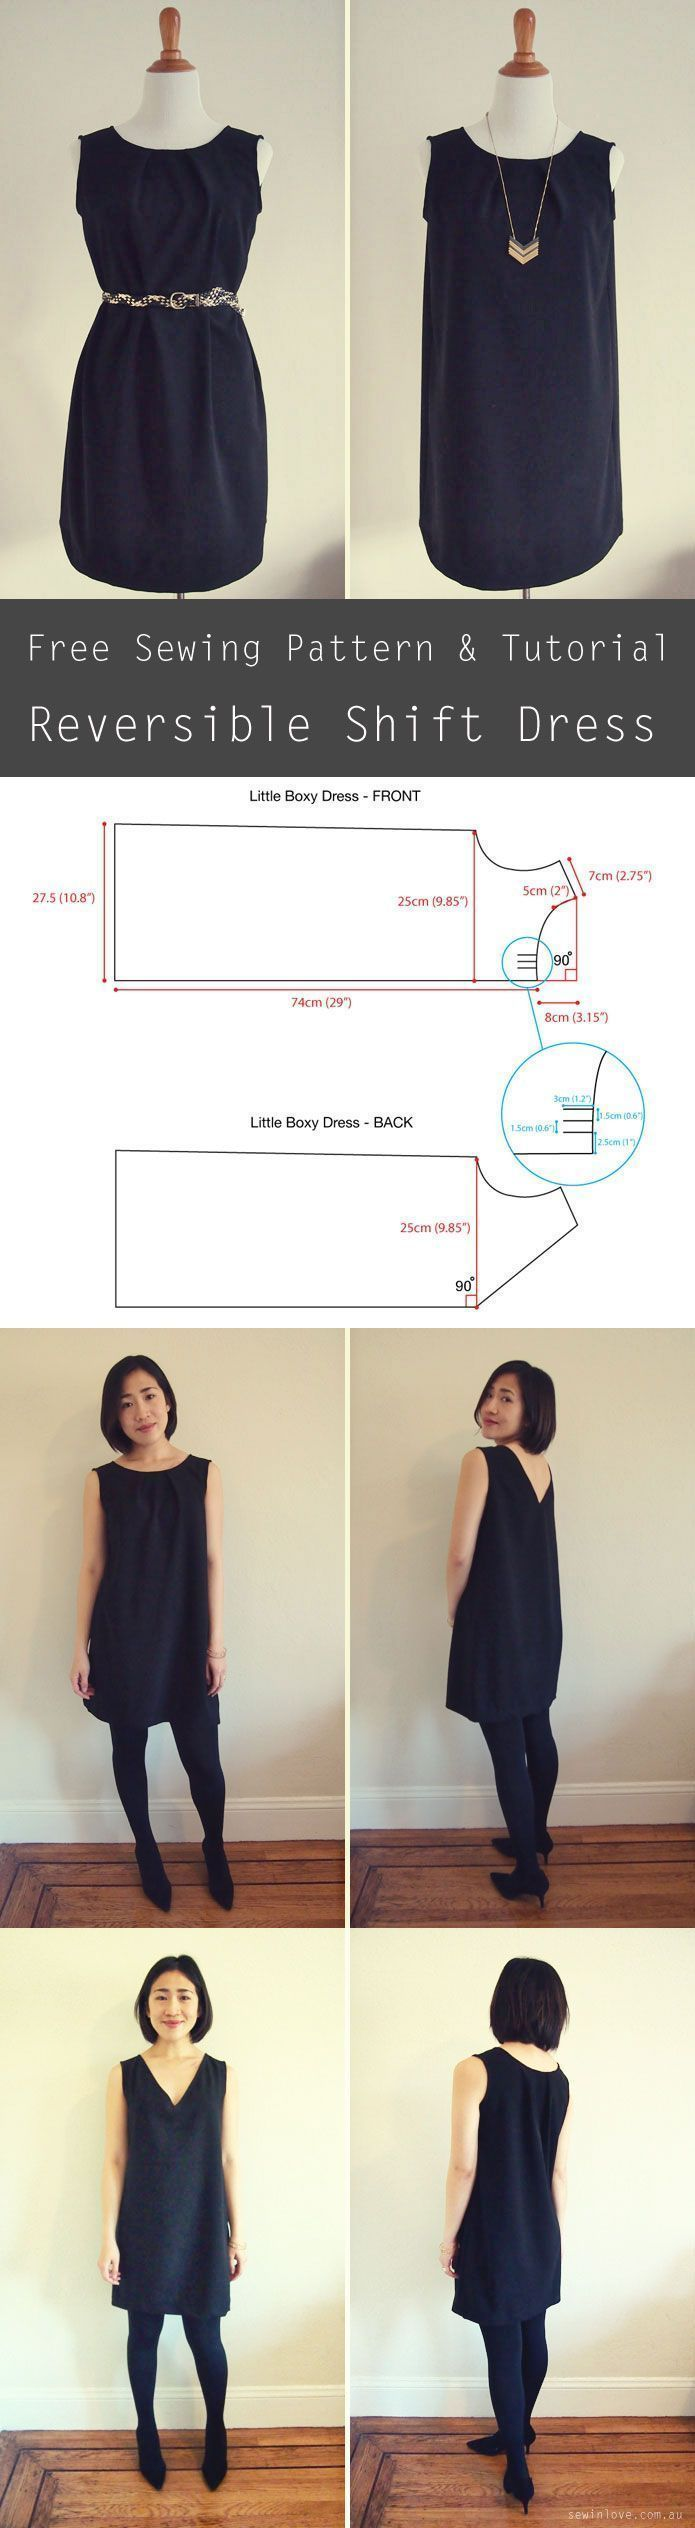 Free sewing pattern reversible v neck and crewneck shift dress